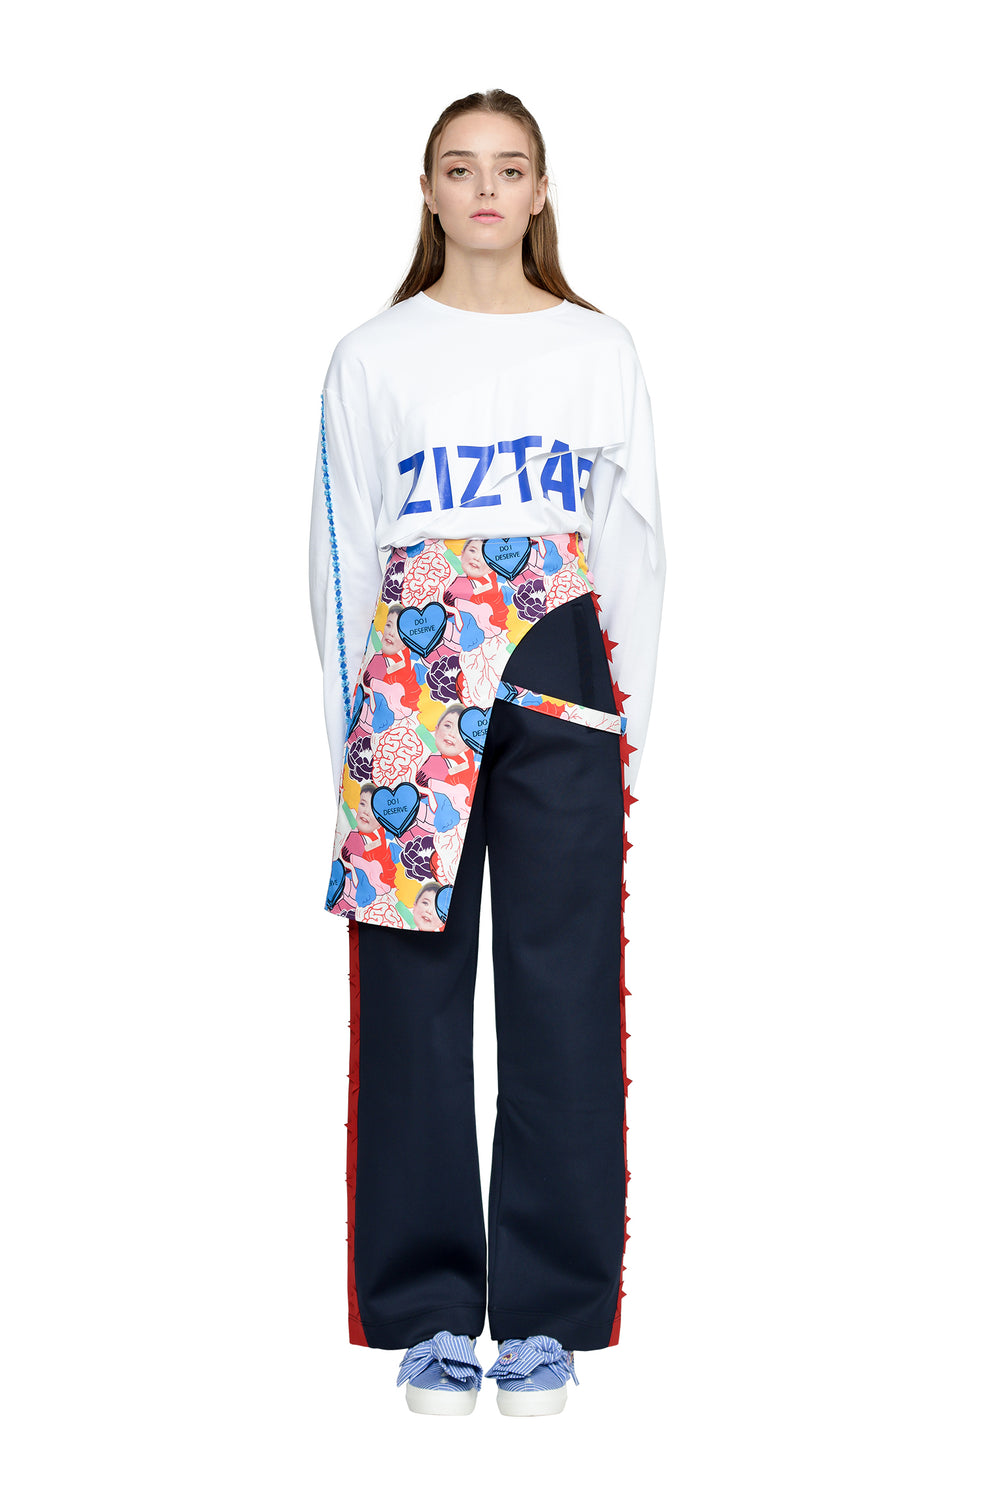 ZIZTAR Think Of Your Original Thought Accessories